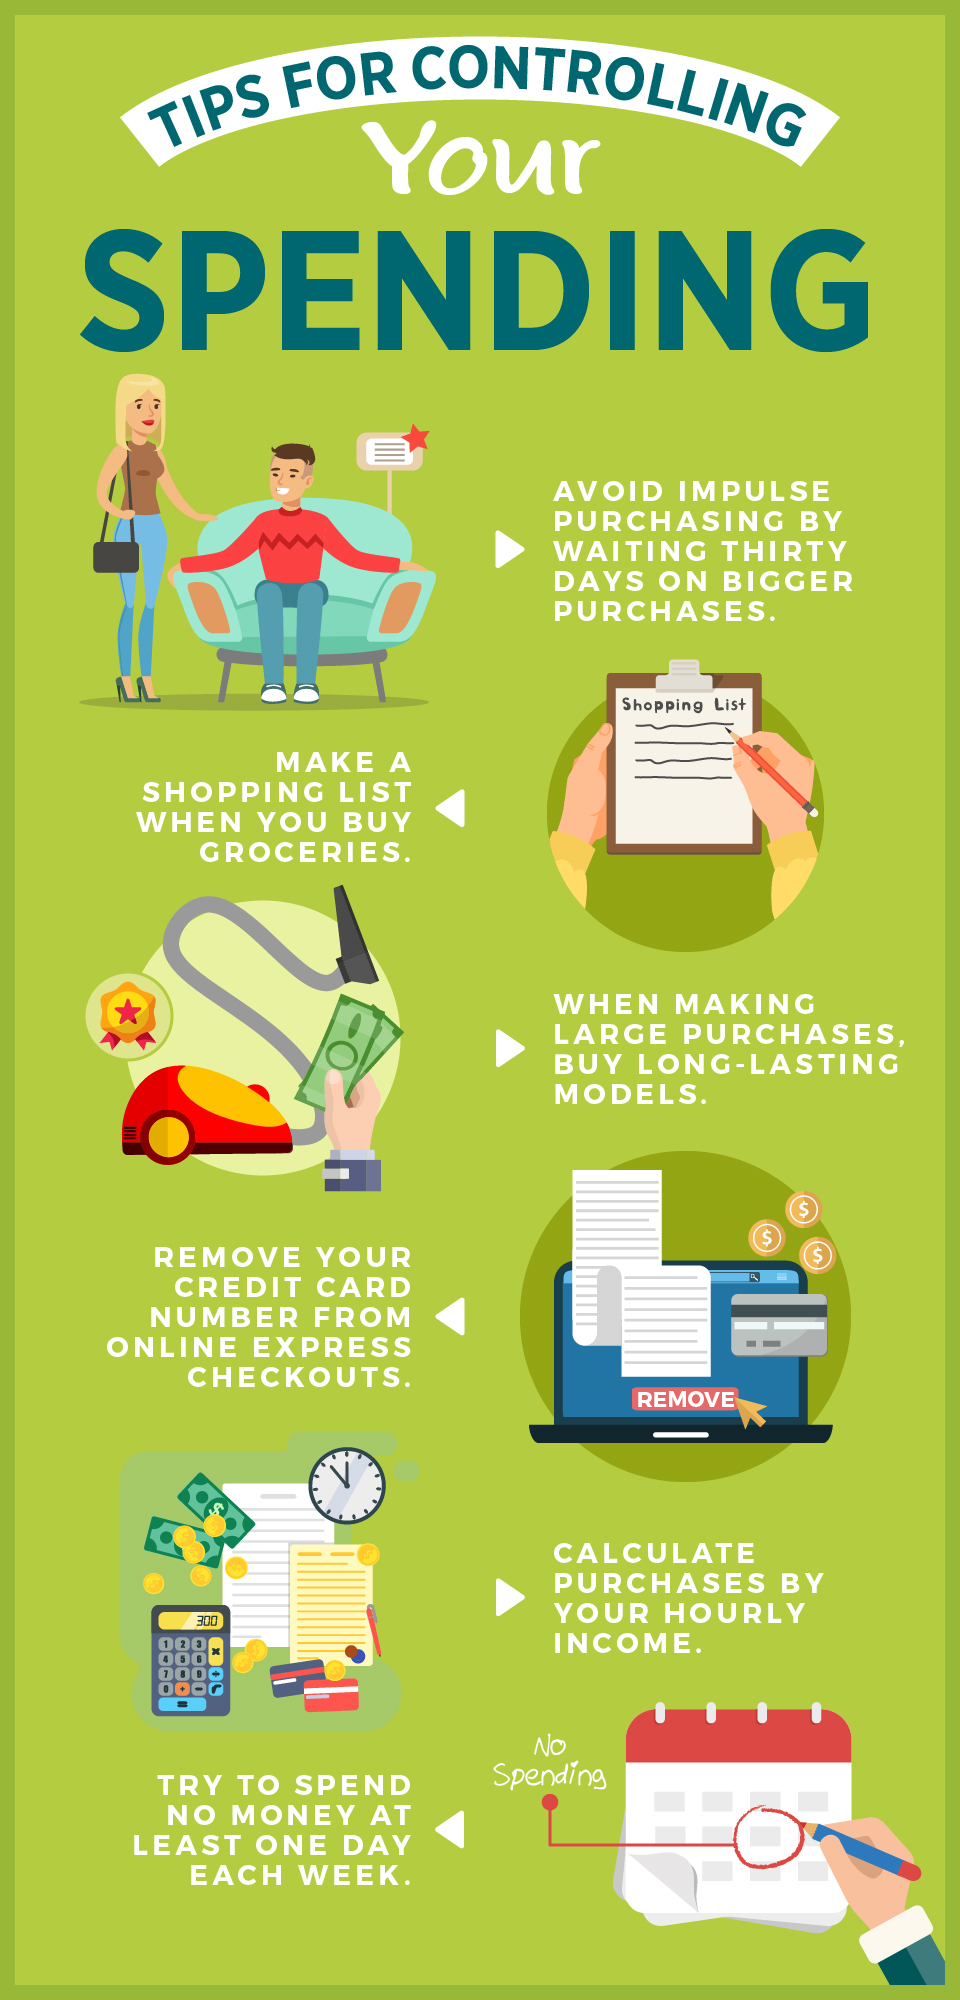 Tips for Controlling Your Spending